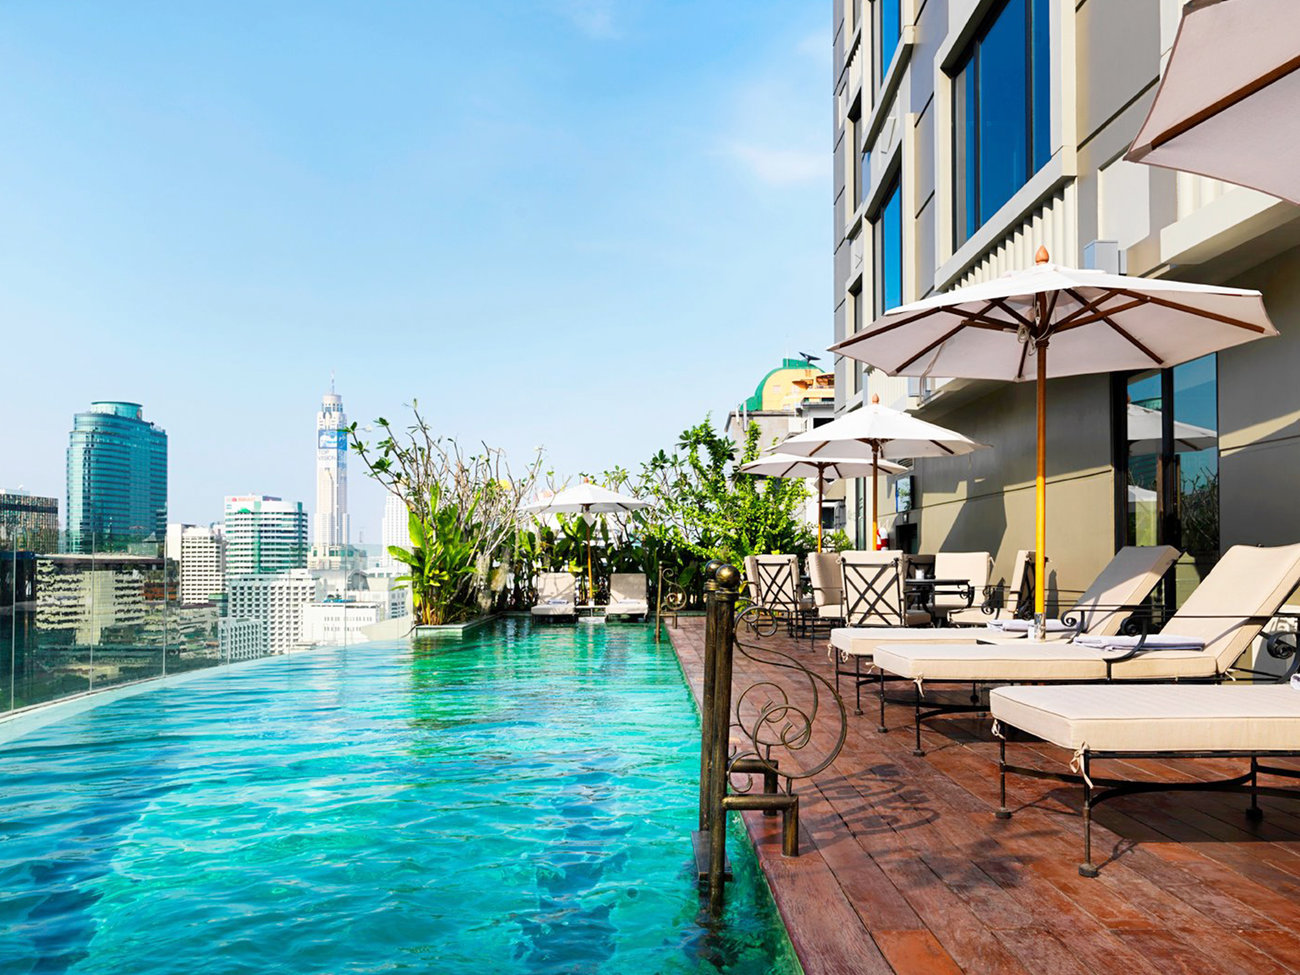 Hotel Muse in Bangkok